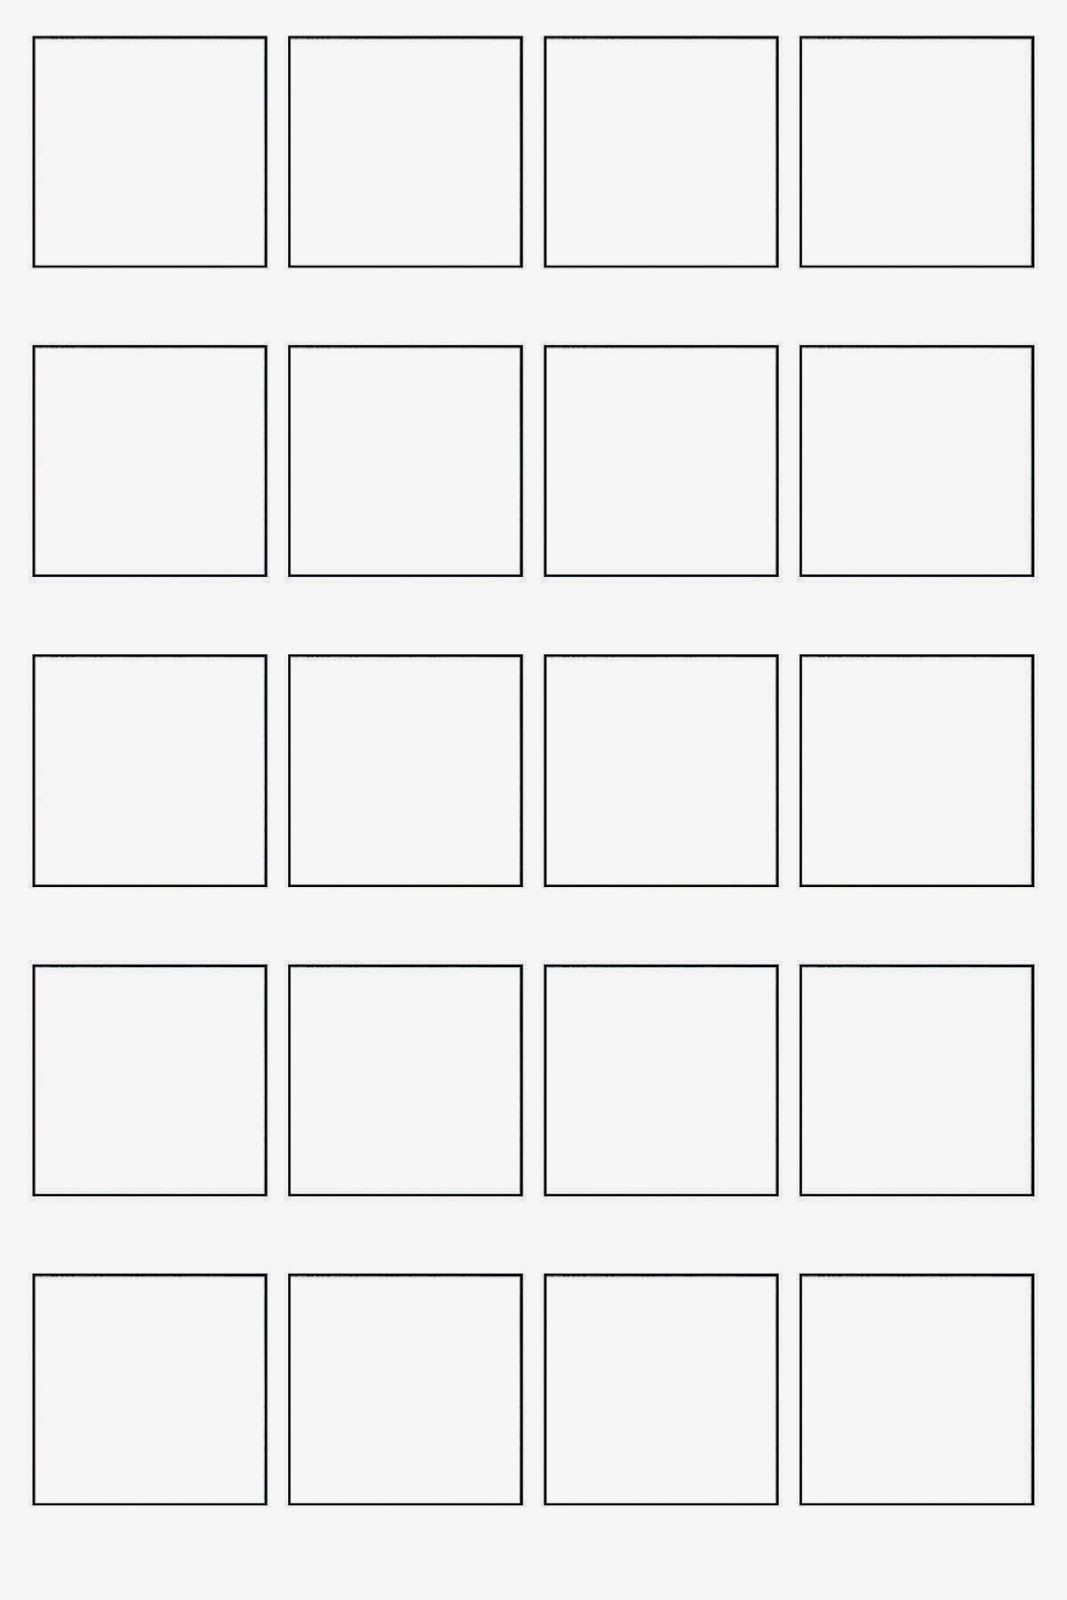 Blank Sheet For Pattern Collections